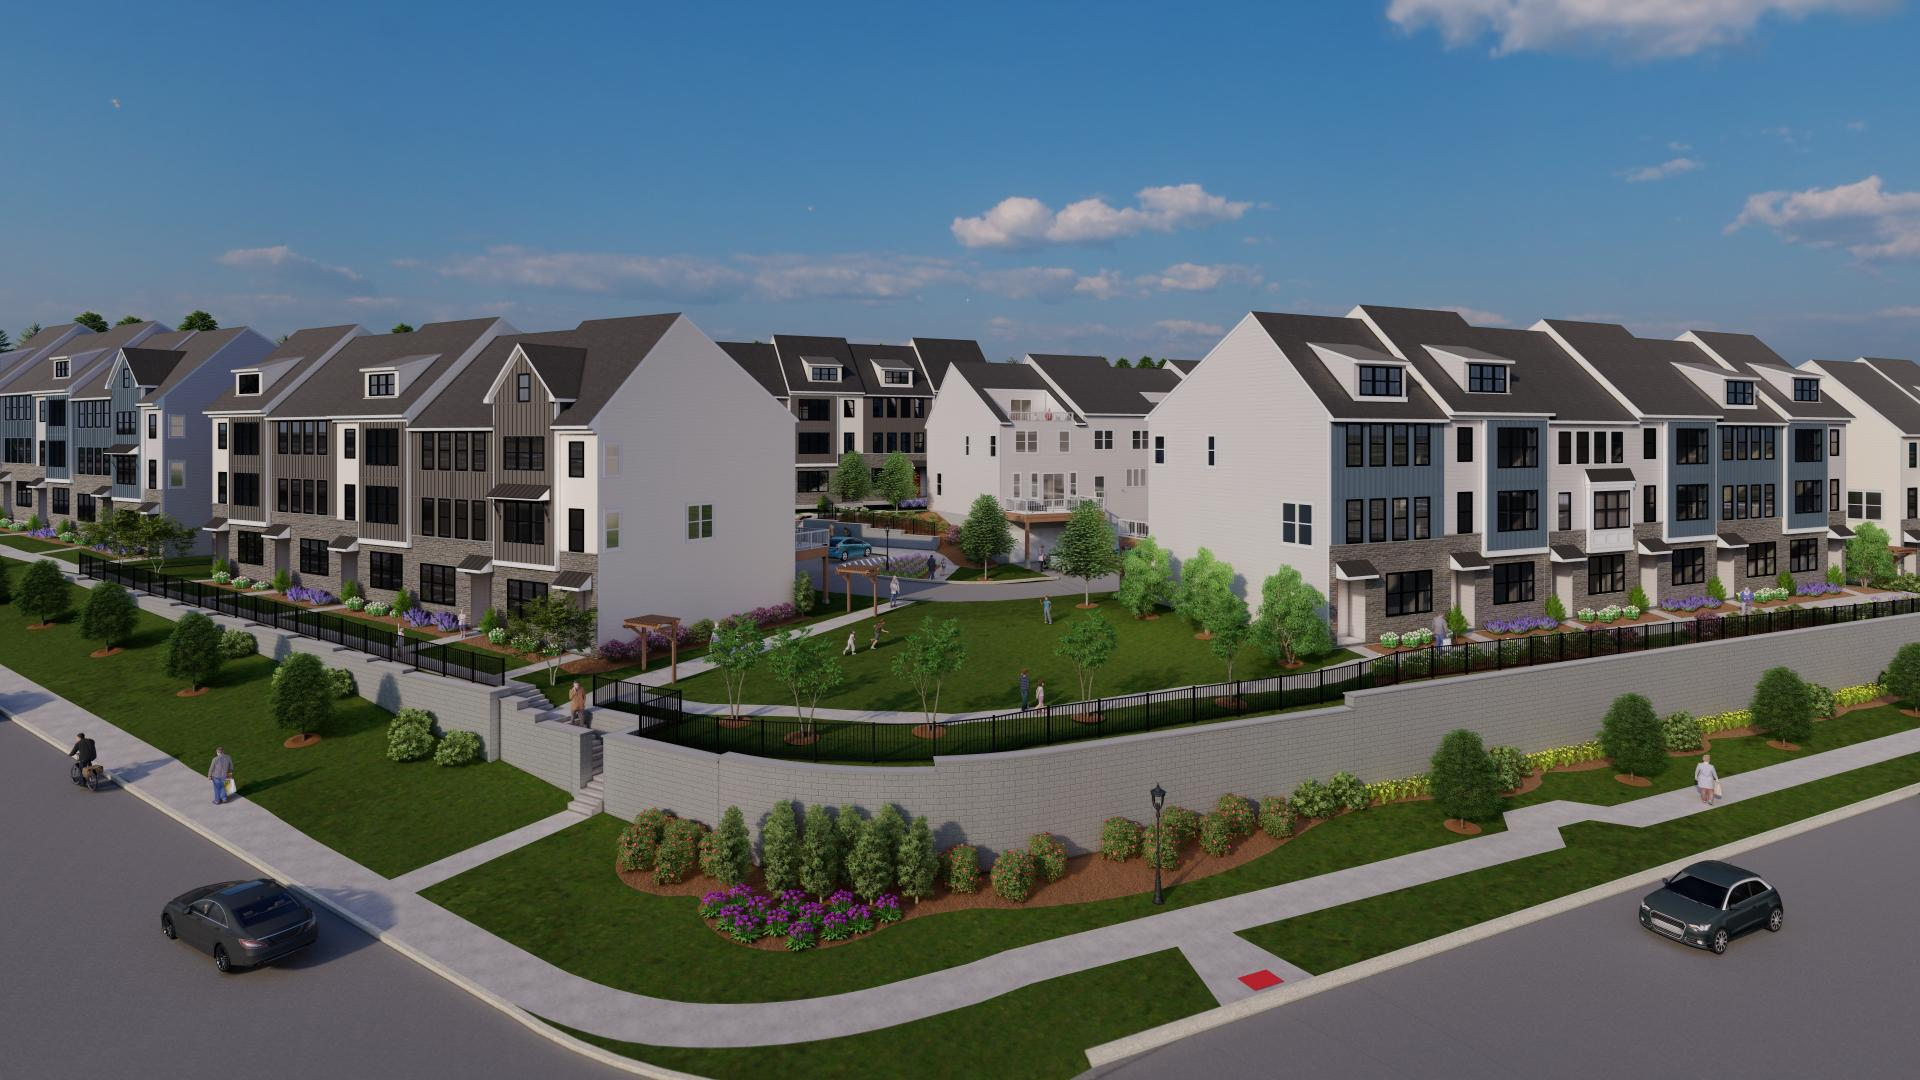 Vibrant community with walking trails, dog park, and fire pit with seating area